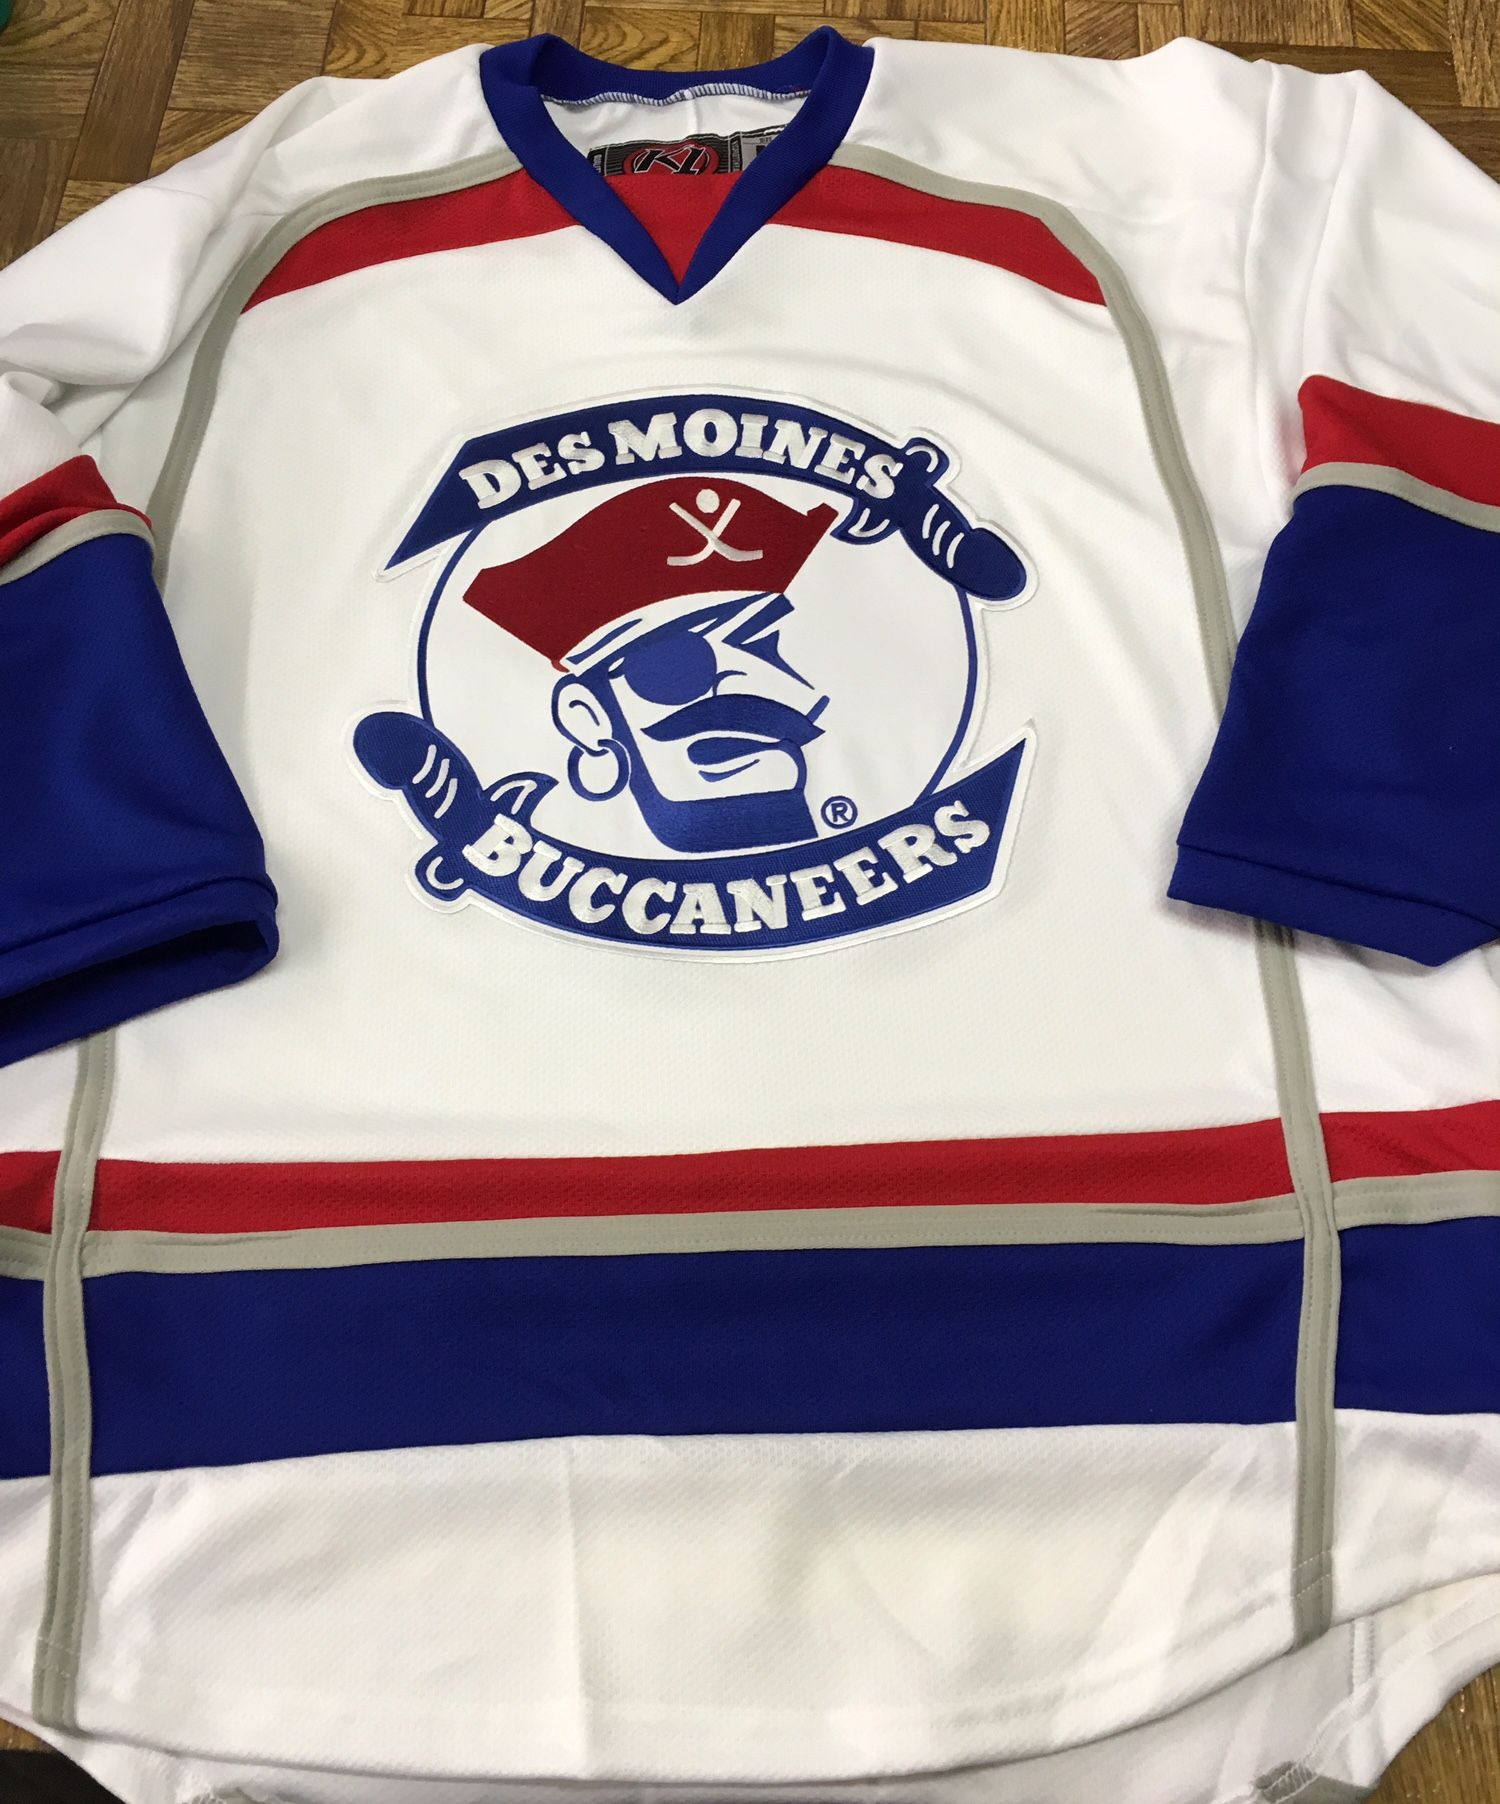 2c32ac35a Custom Des Moines Buccaneers Hockey Jerseys. Made in the USA at K1  Sportswear.